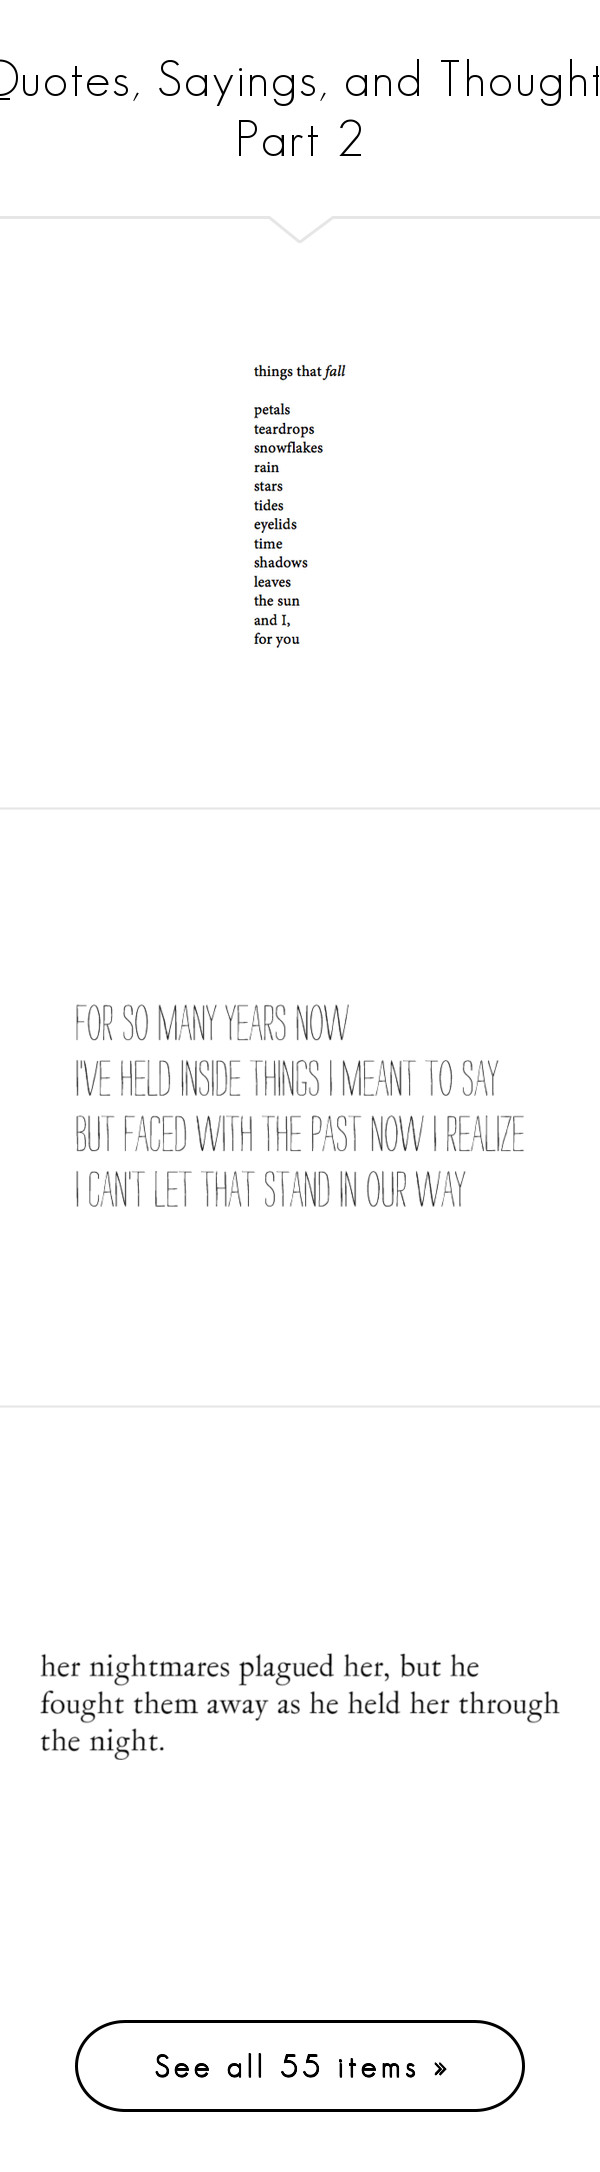 """Quotes, Sayings, and Thoughts Part 2"" by blondypup ❤ liked on Polyvore featuring words, text, quotes, fillers, backgrounds, magazine, phrases, doodles, saying and scribble"